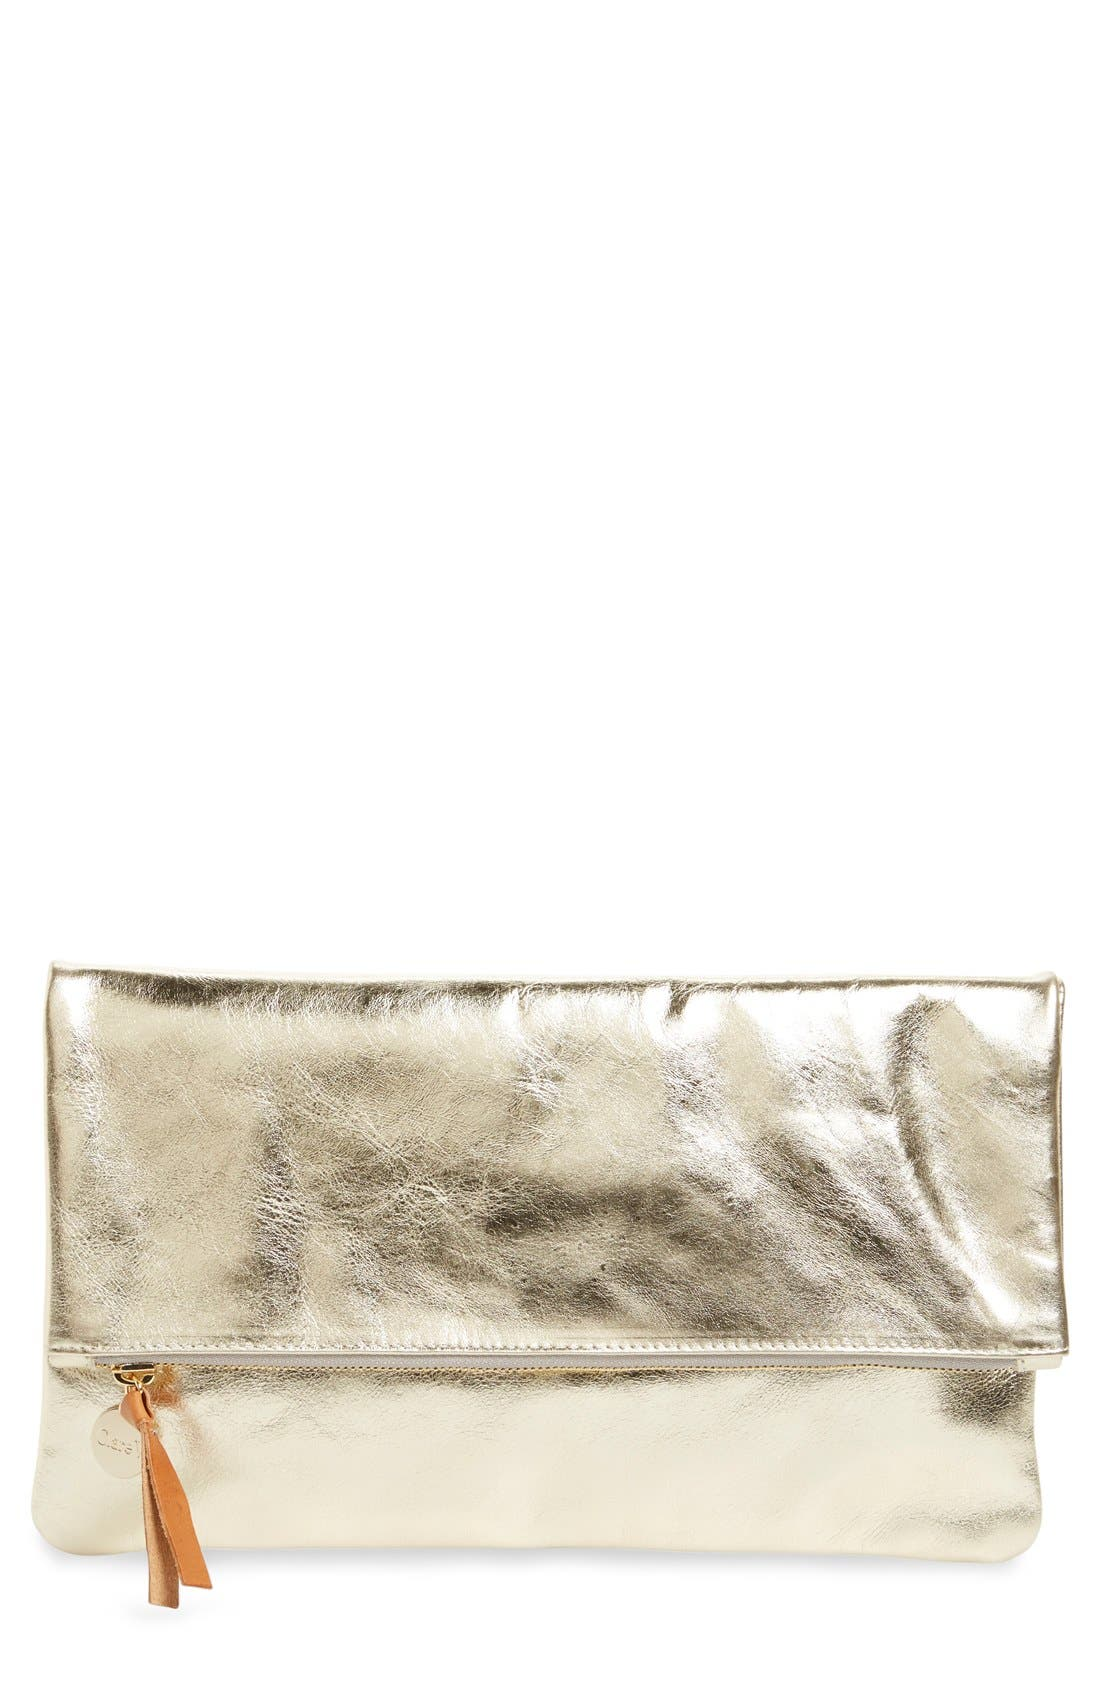 Alternate Image 1 Selected - Clare V. 'Maison' Metallic Leather Foldover Clutch